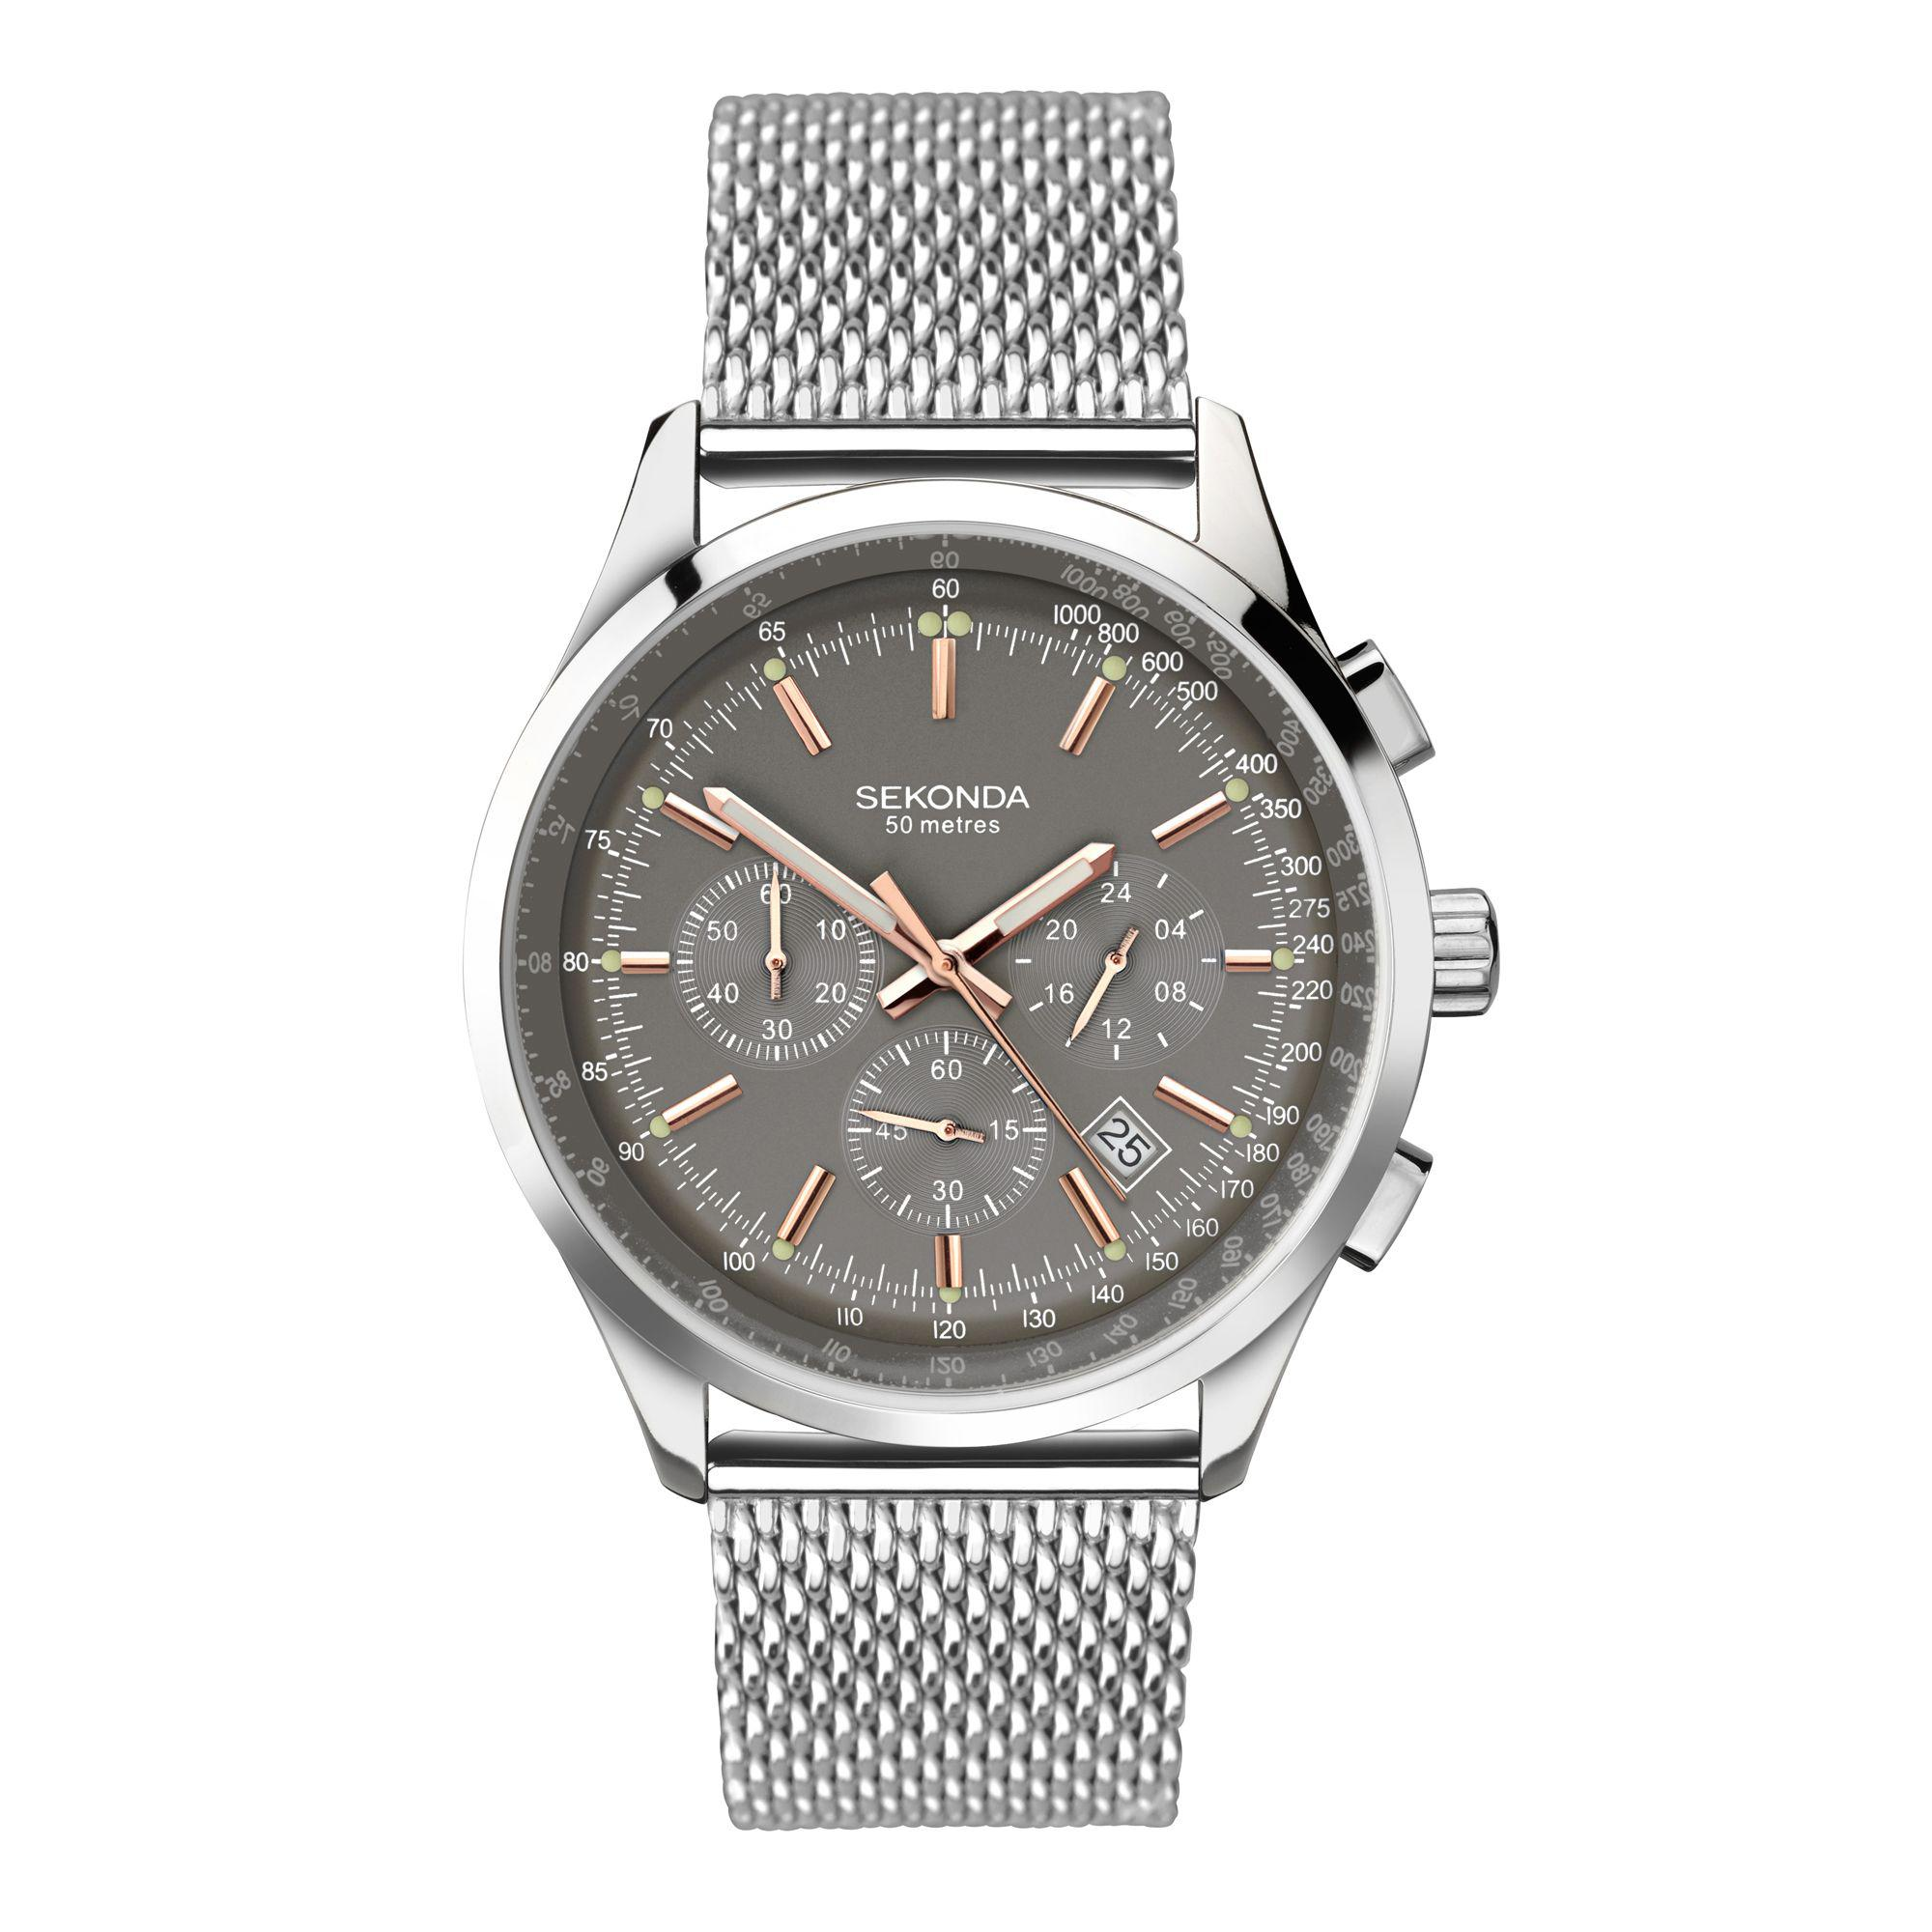 216a5c8138 Sekonda Men's Silver Chronograph Bracelet Watch 1490.28 in Metallic ...